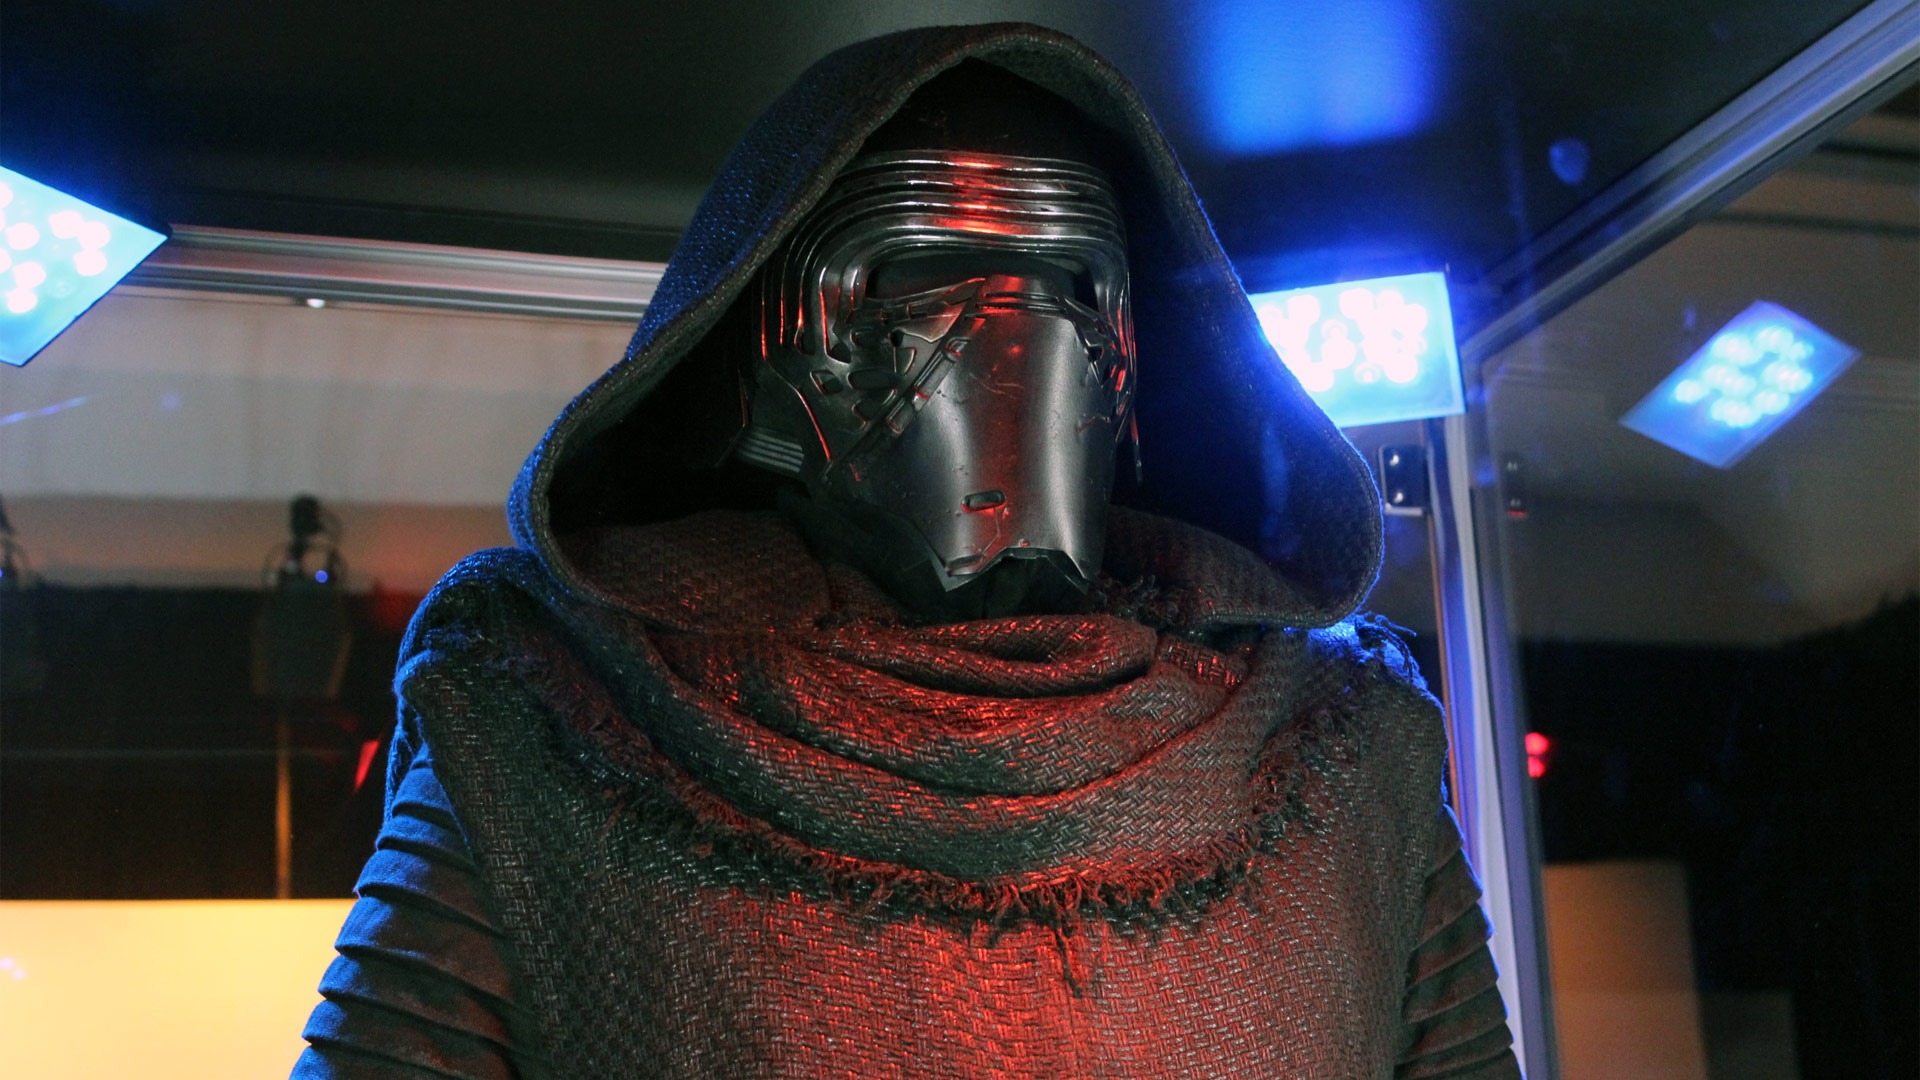 A Very Detailed And Crisp Look At Kylo Ren S Mask From The